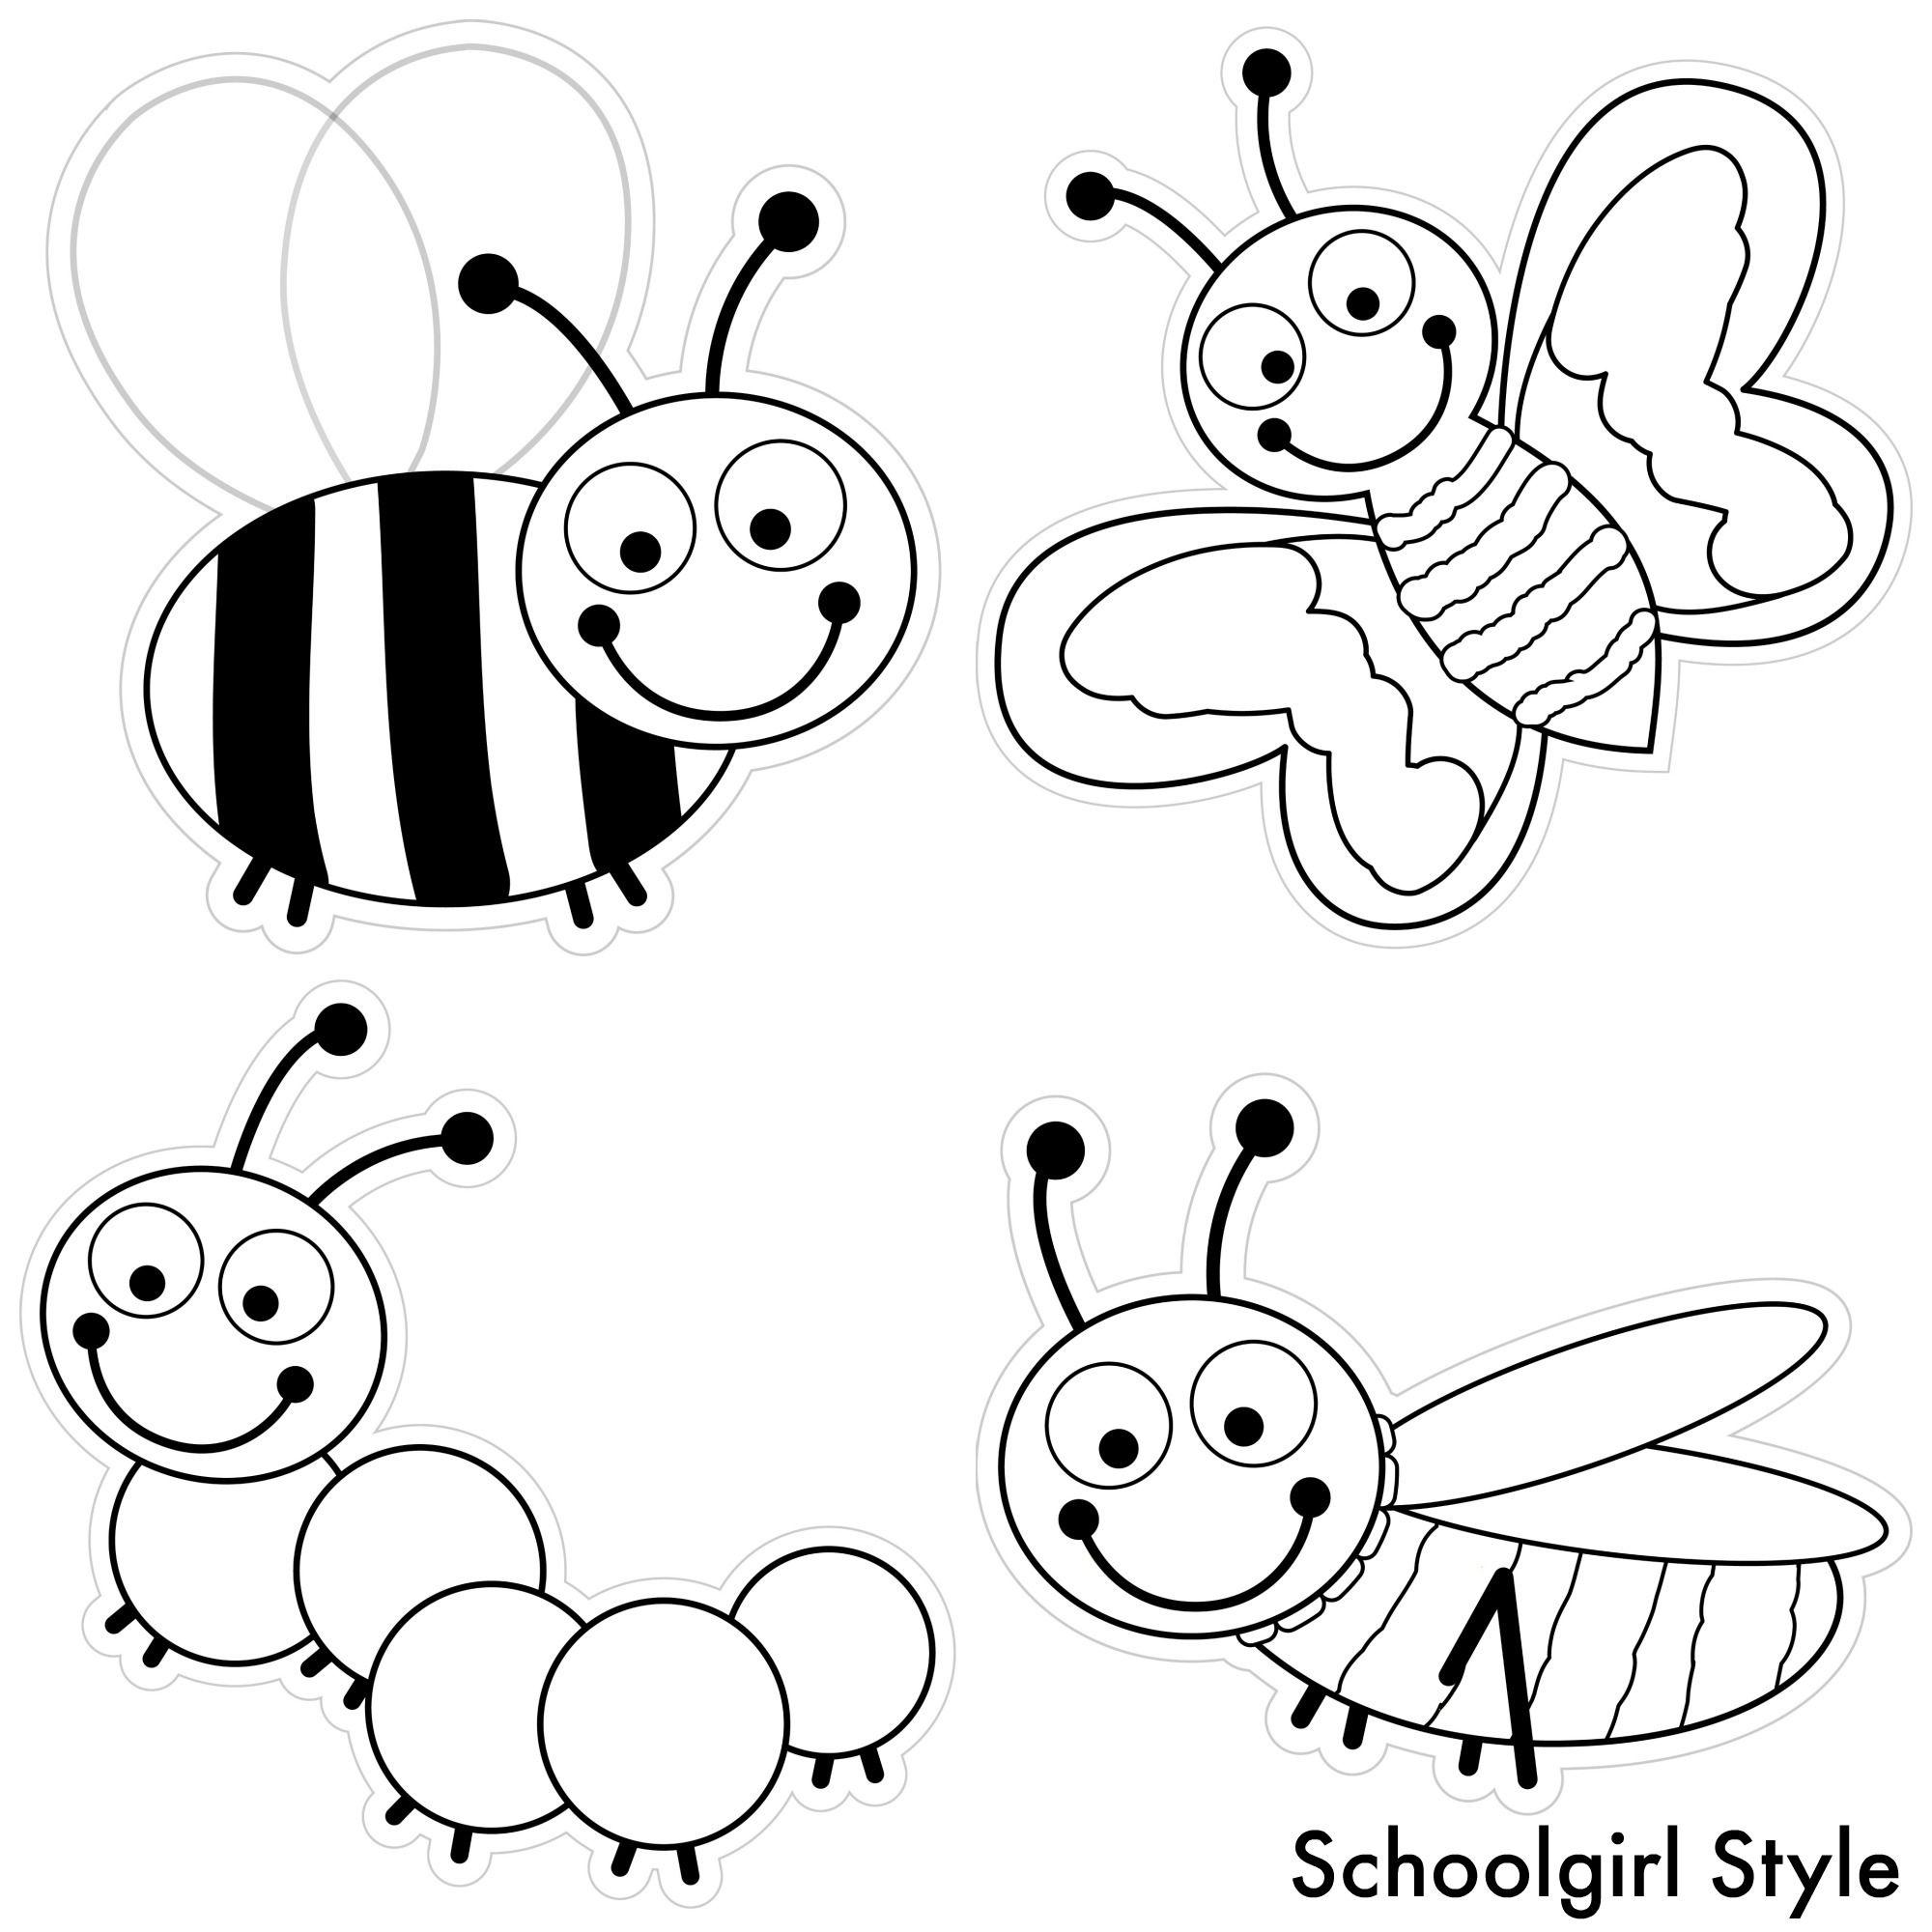 color my classroom bugs by schoolgirl style bug insects bee